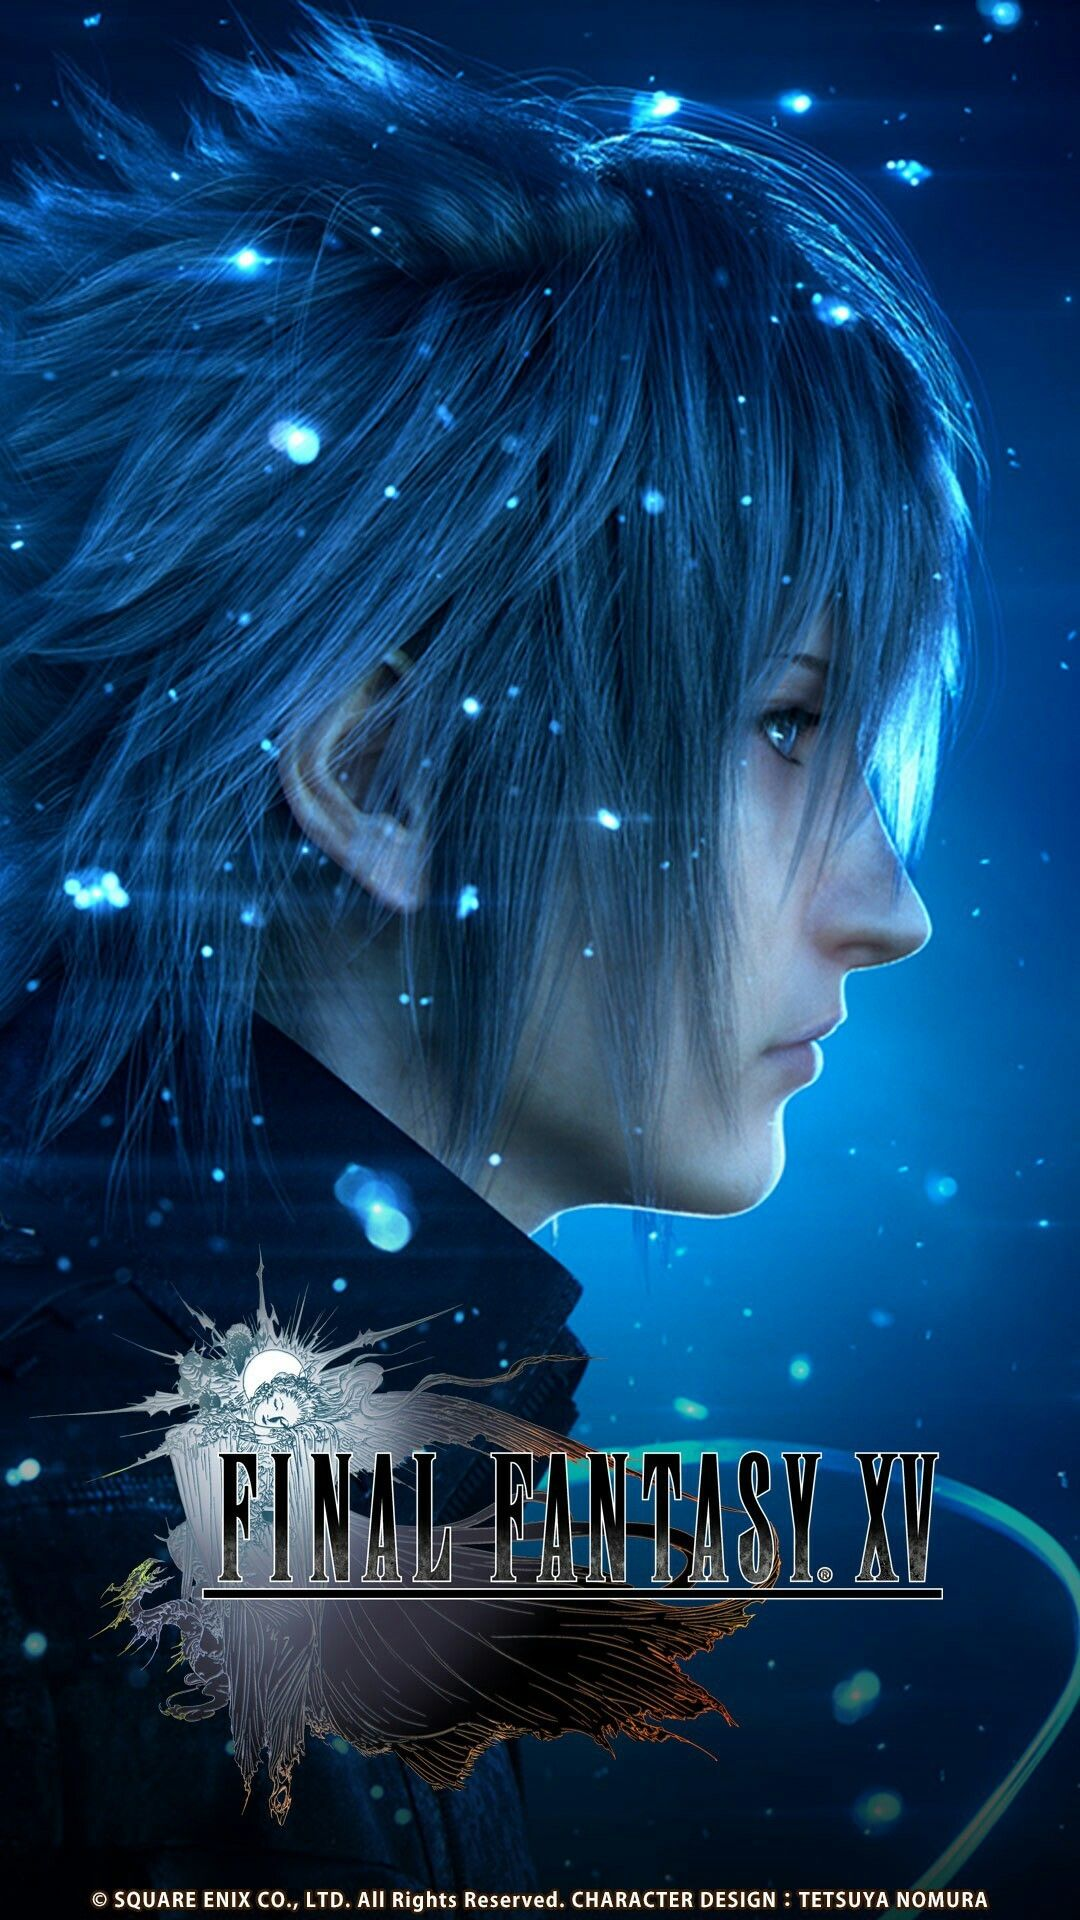 Ffxv Picture in 2020 Final fantasy xv wallpapers, Final